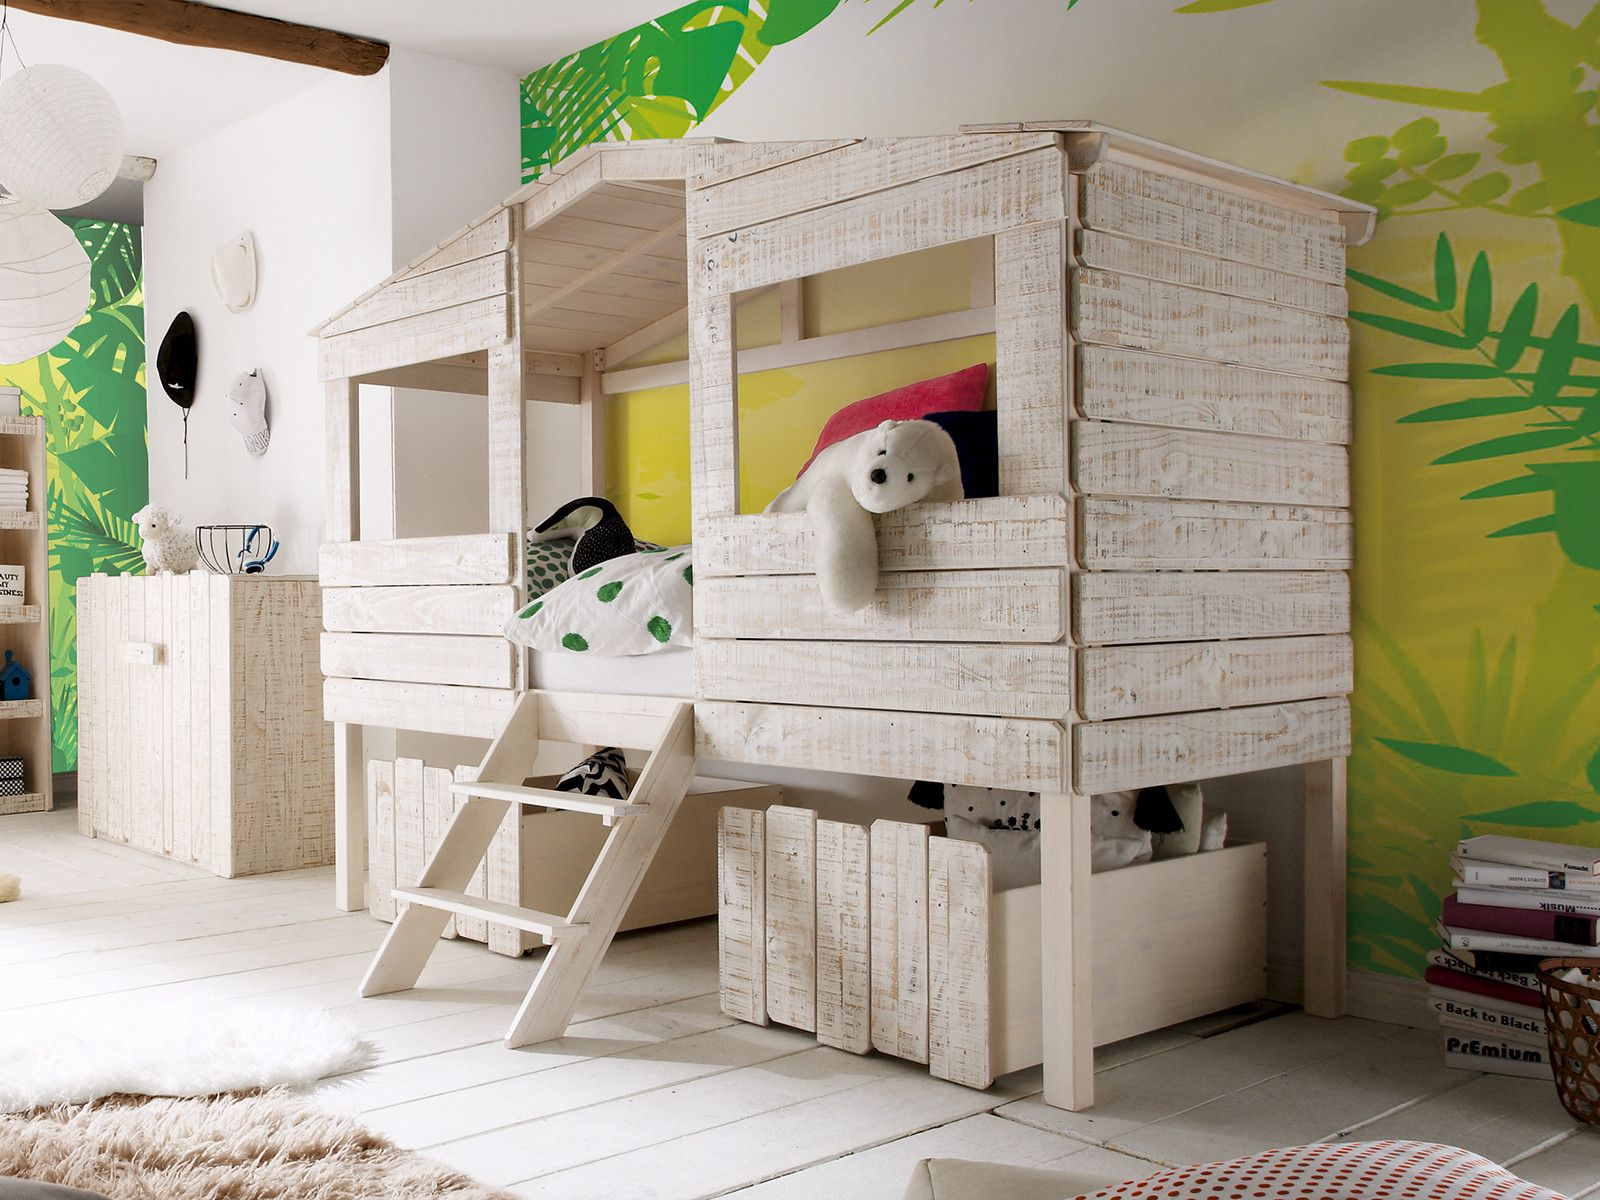 kinderbett safari zuk nftige projekte pinterest. Black Bedroom Furniture Sets. Home Design Ideas